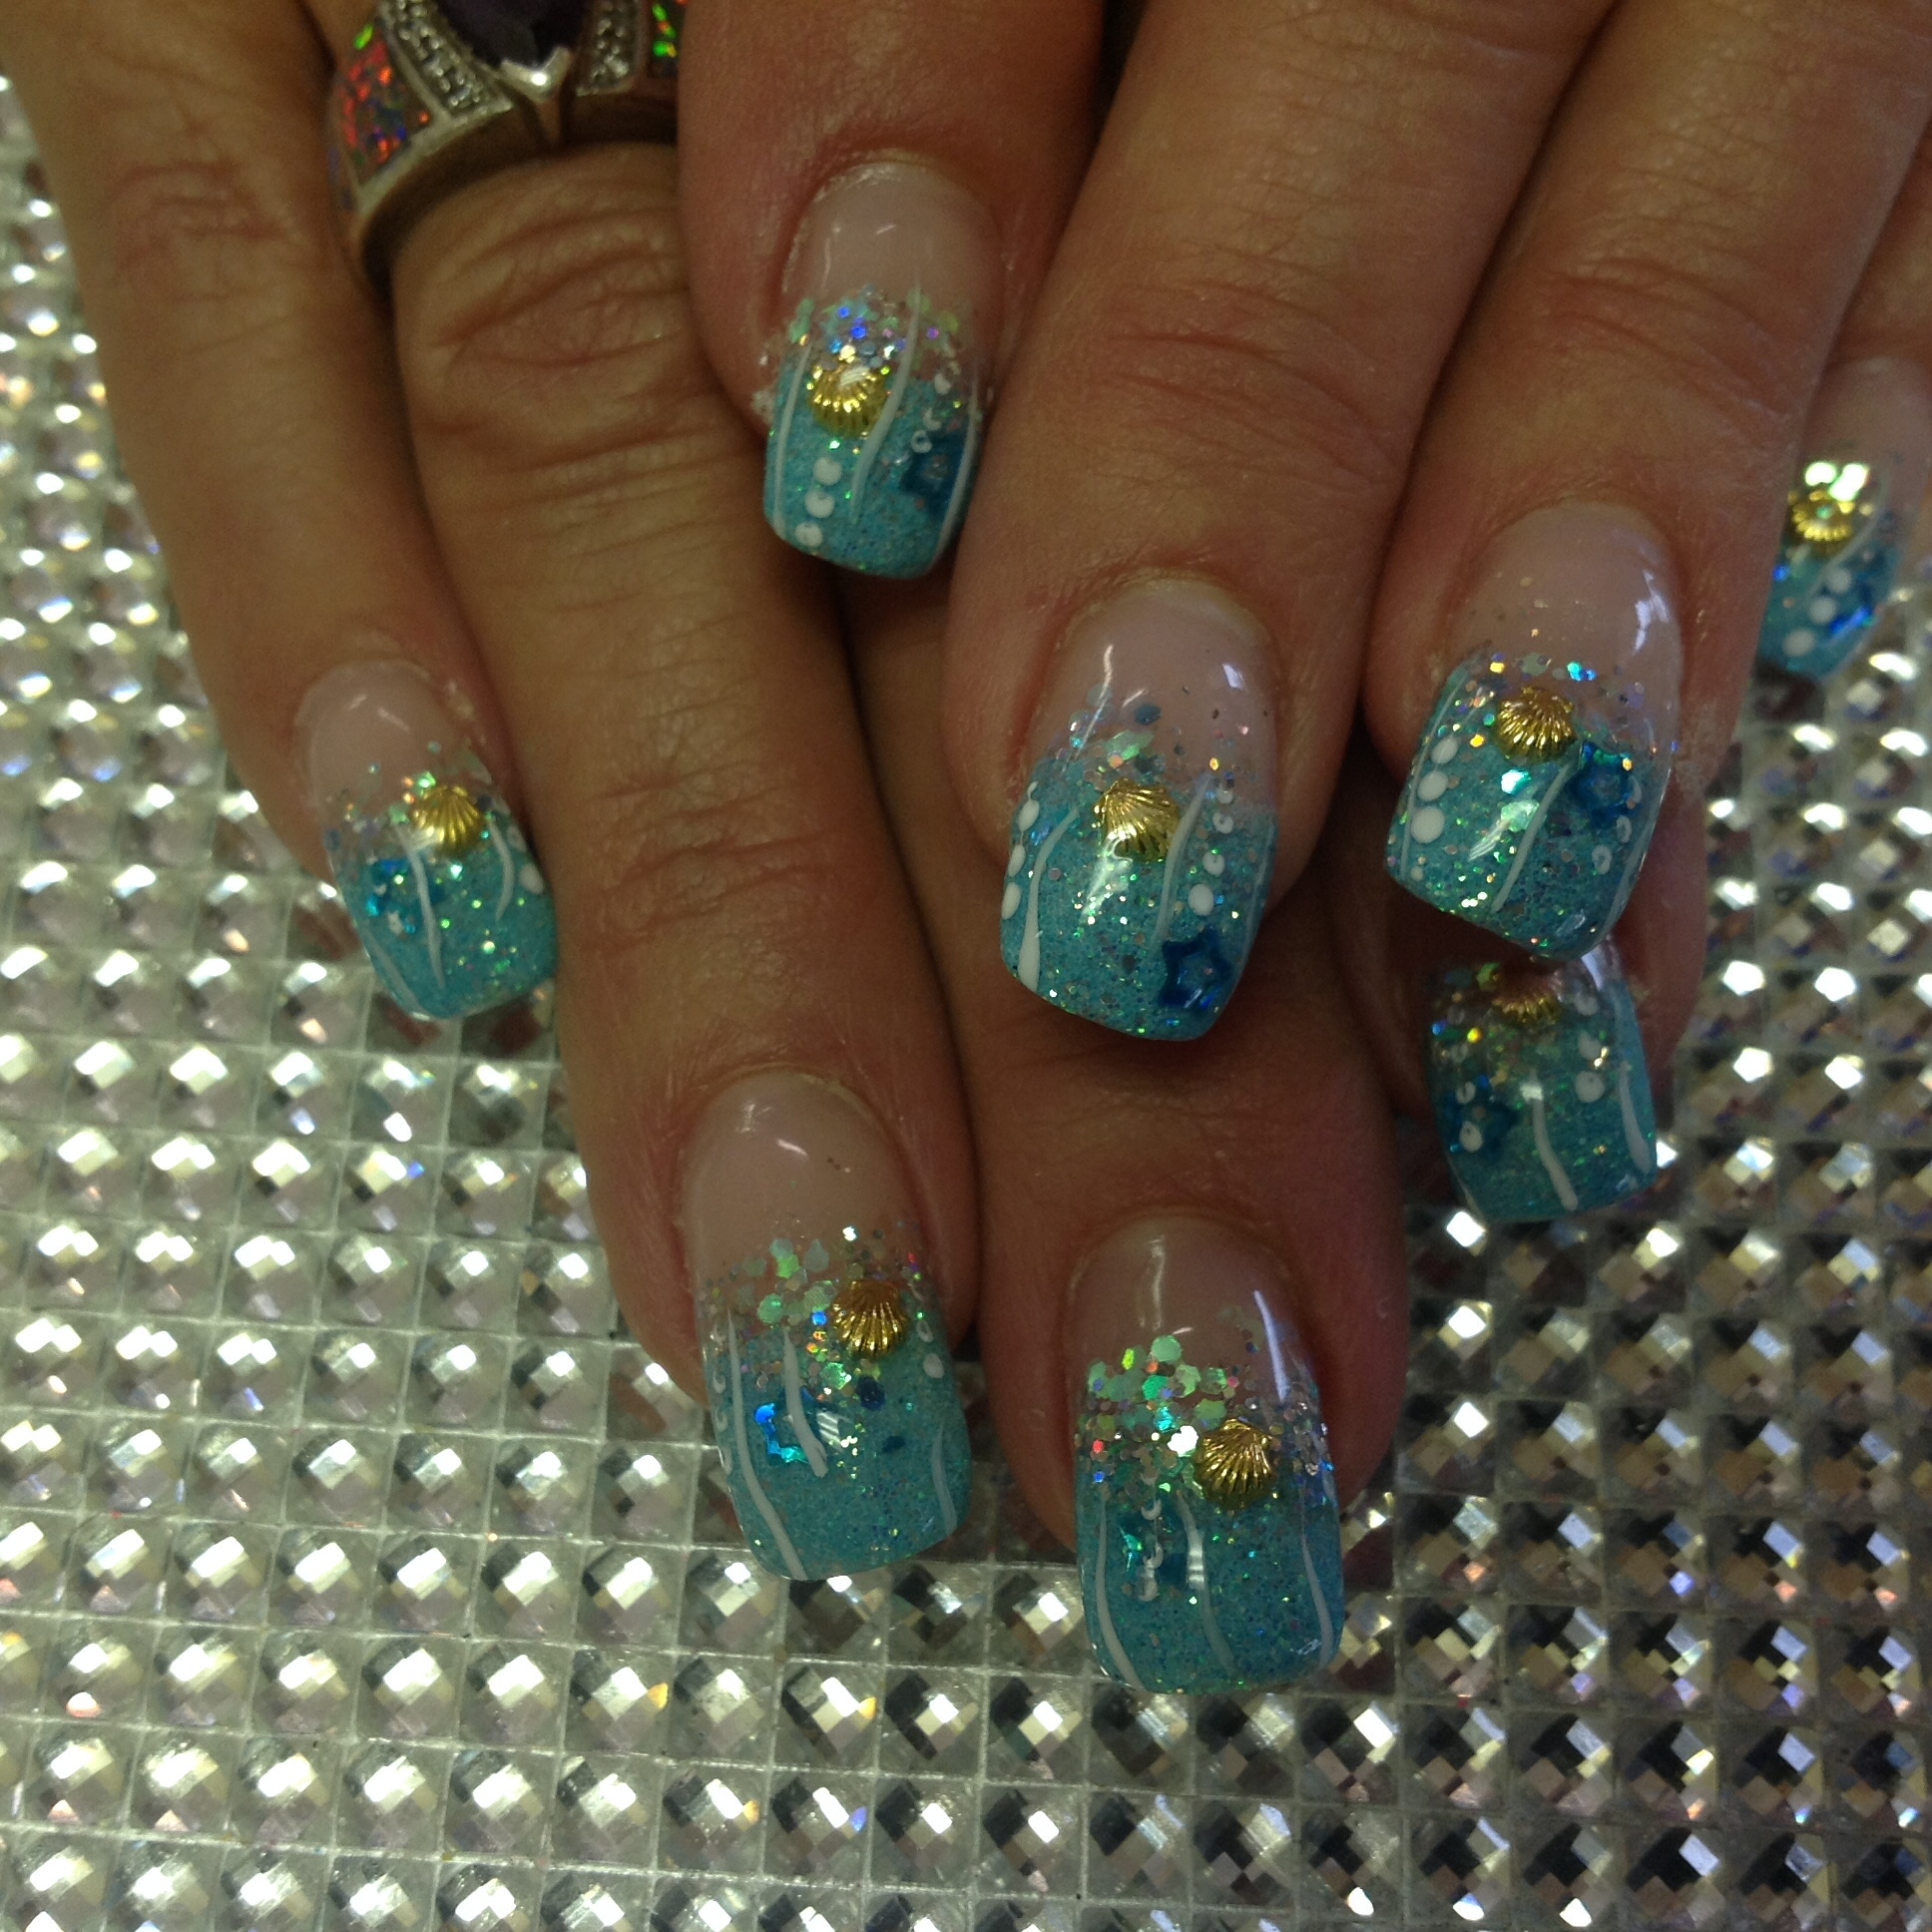 Ambitions Nail And Hair Studios In Boise ID | Vagaro